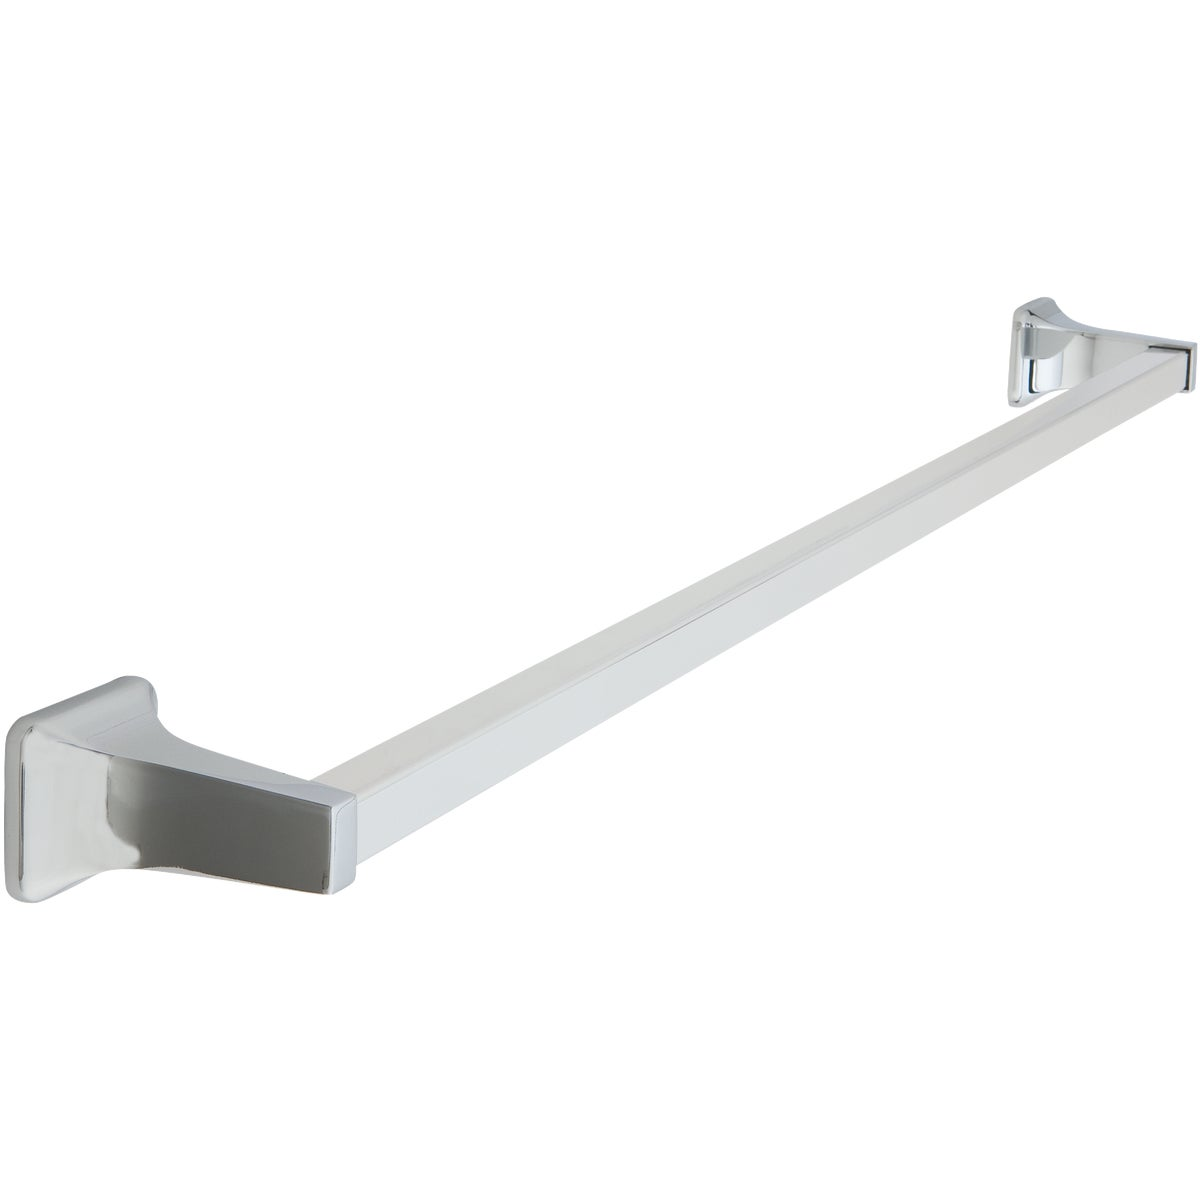 "30"" CHROME TOWEL BAR - 409329 by Do it Best"